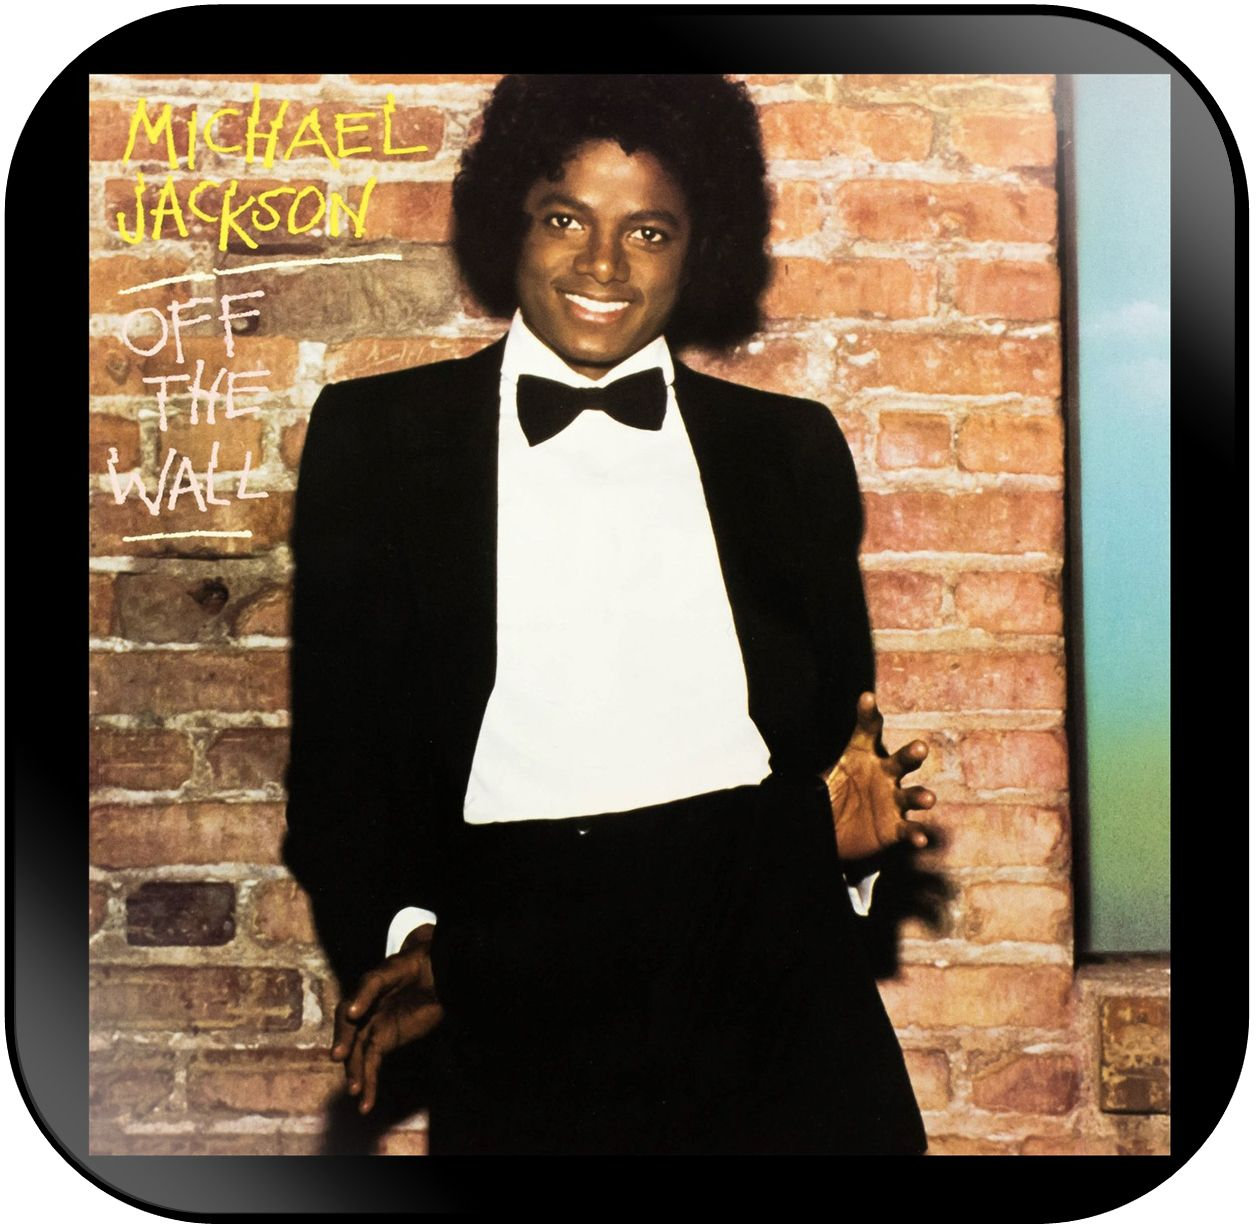 Michael Jackson Off The Wall Album Cover Sticker With Images